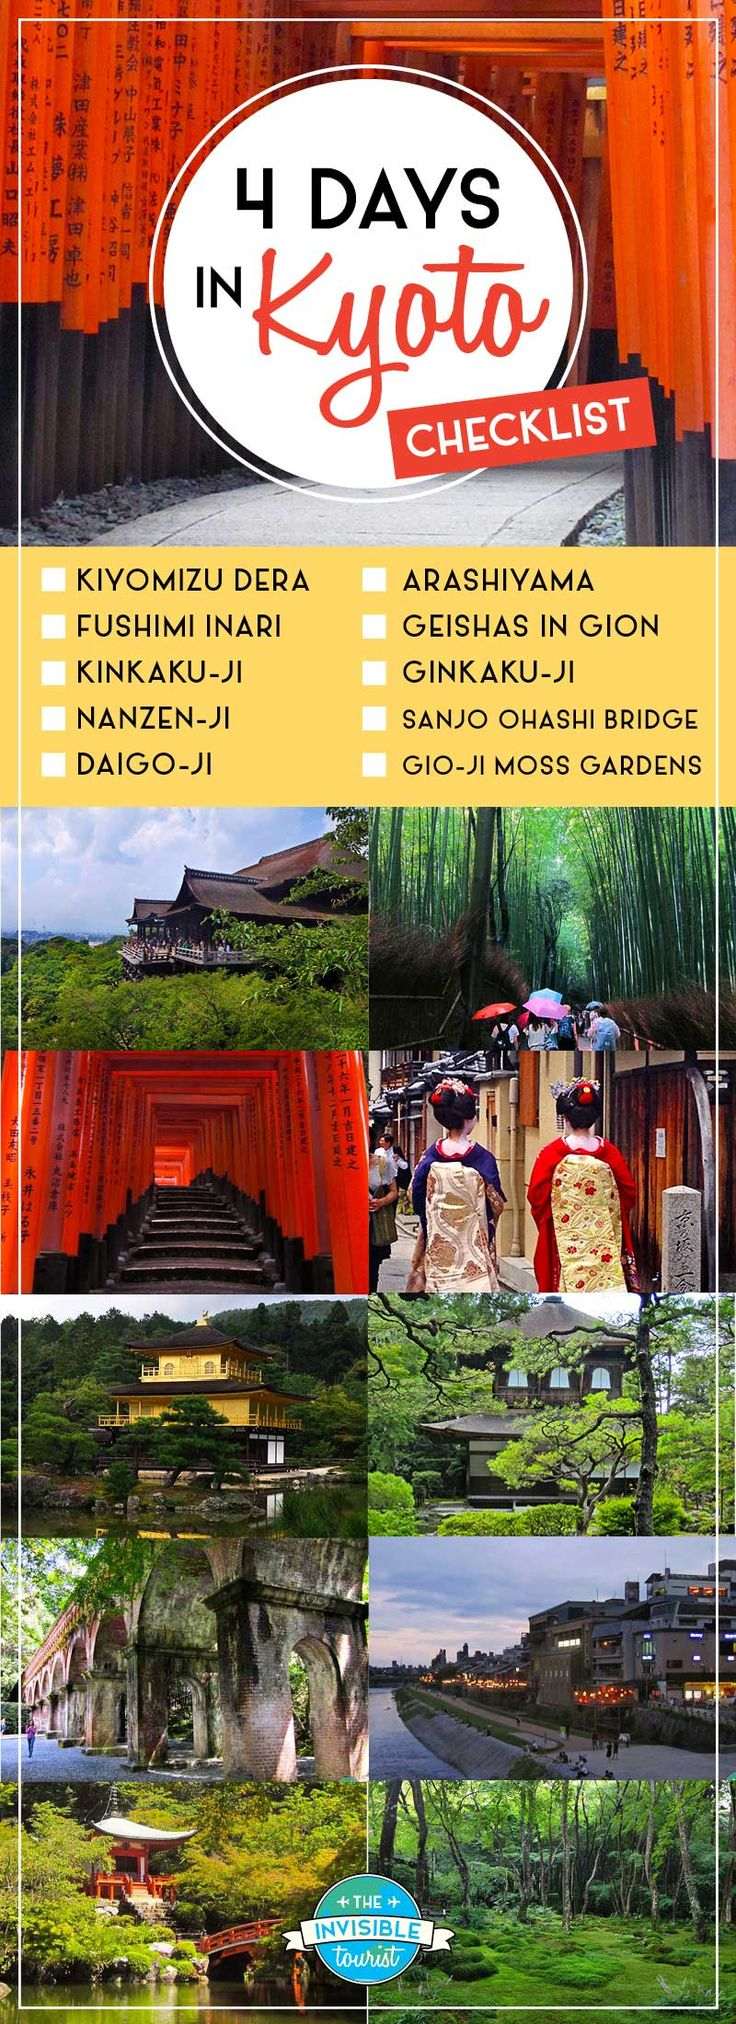 Kyoto Checklist | One of Japan's most awesome cities